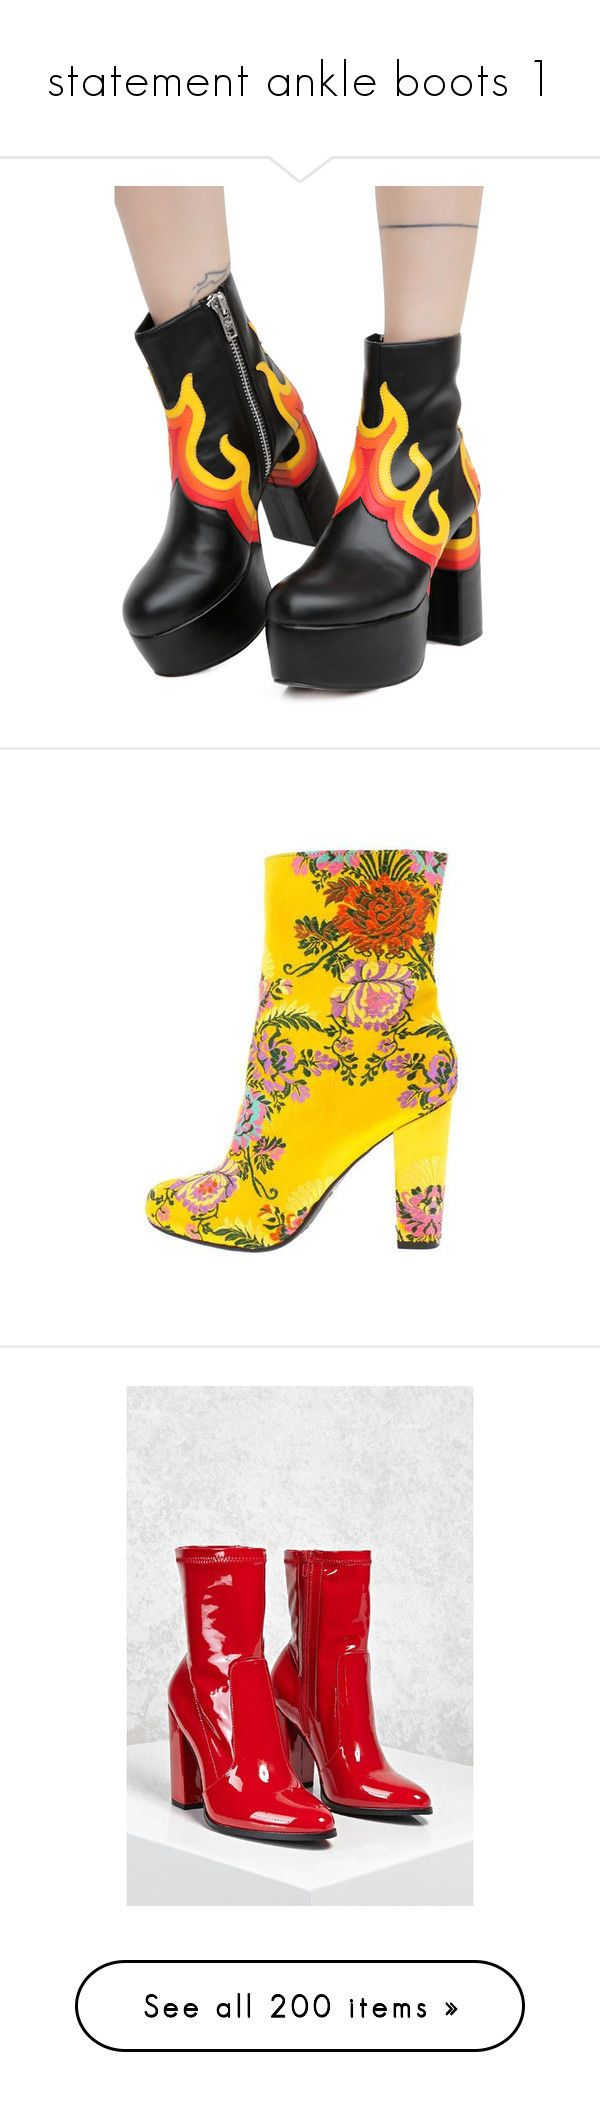 """""""statement ankle boots 1"""" by softmeat ❤ liked on Polyvore featuring shoes, boots, chunky heel platform shoes, platform boots, zipper boots, platform shoes, current mood, ankle booties, embellished booties and side zip boots"""